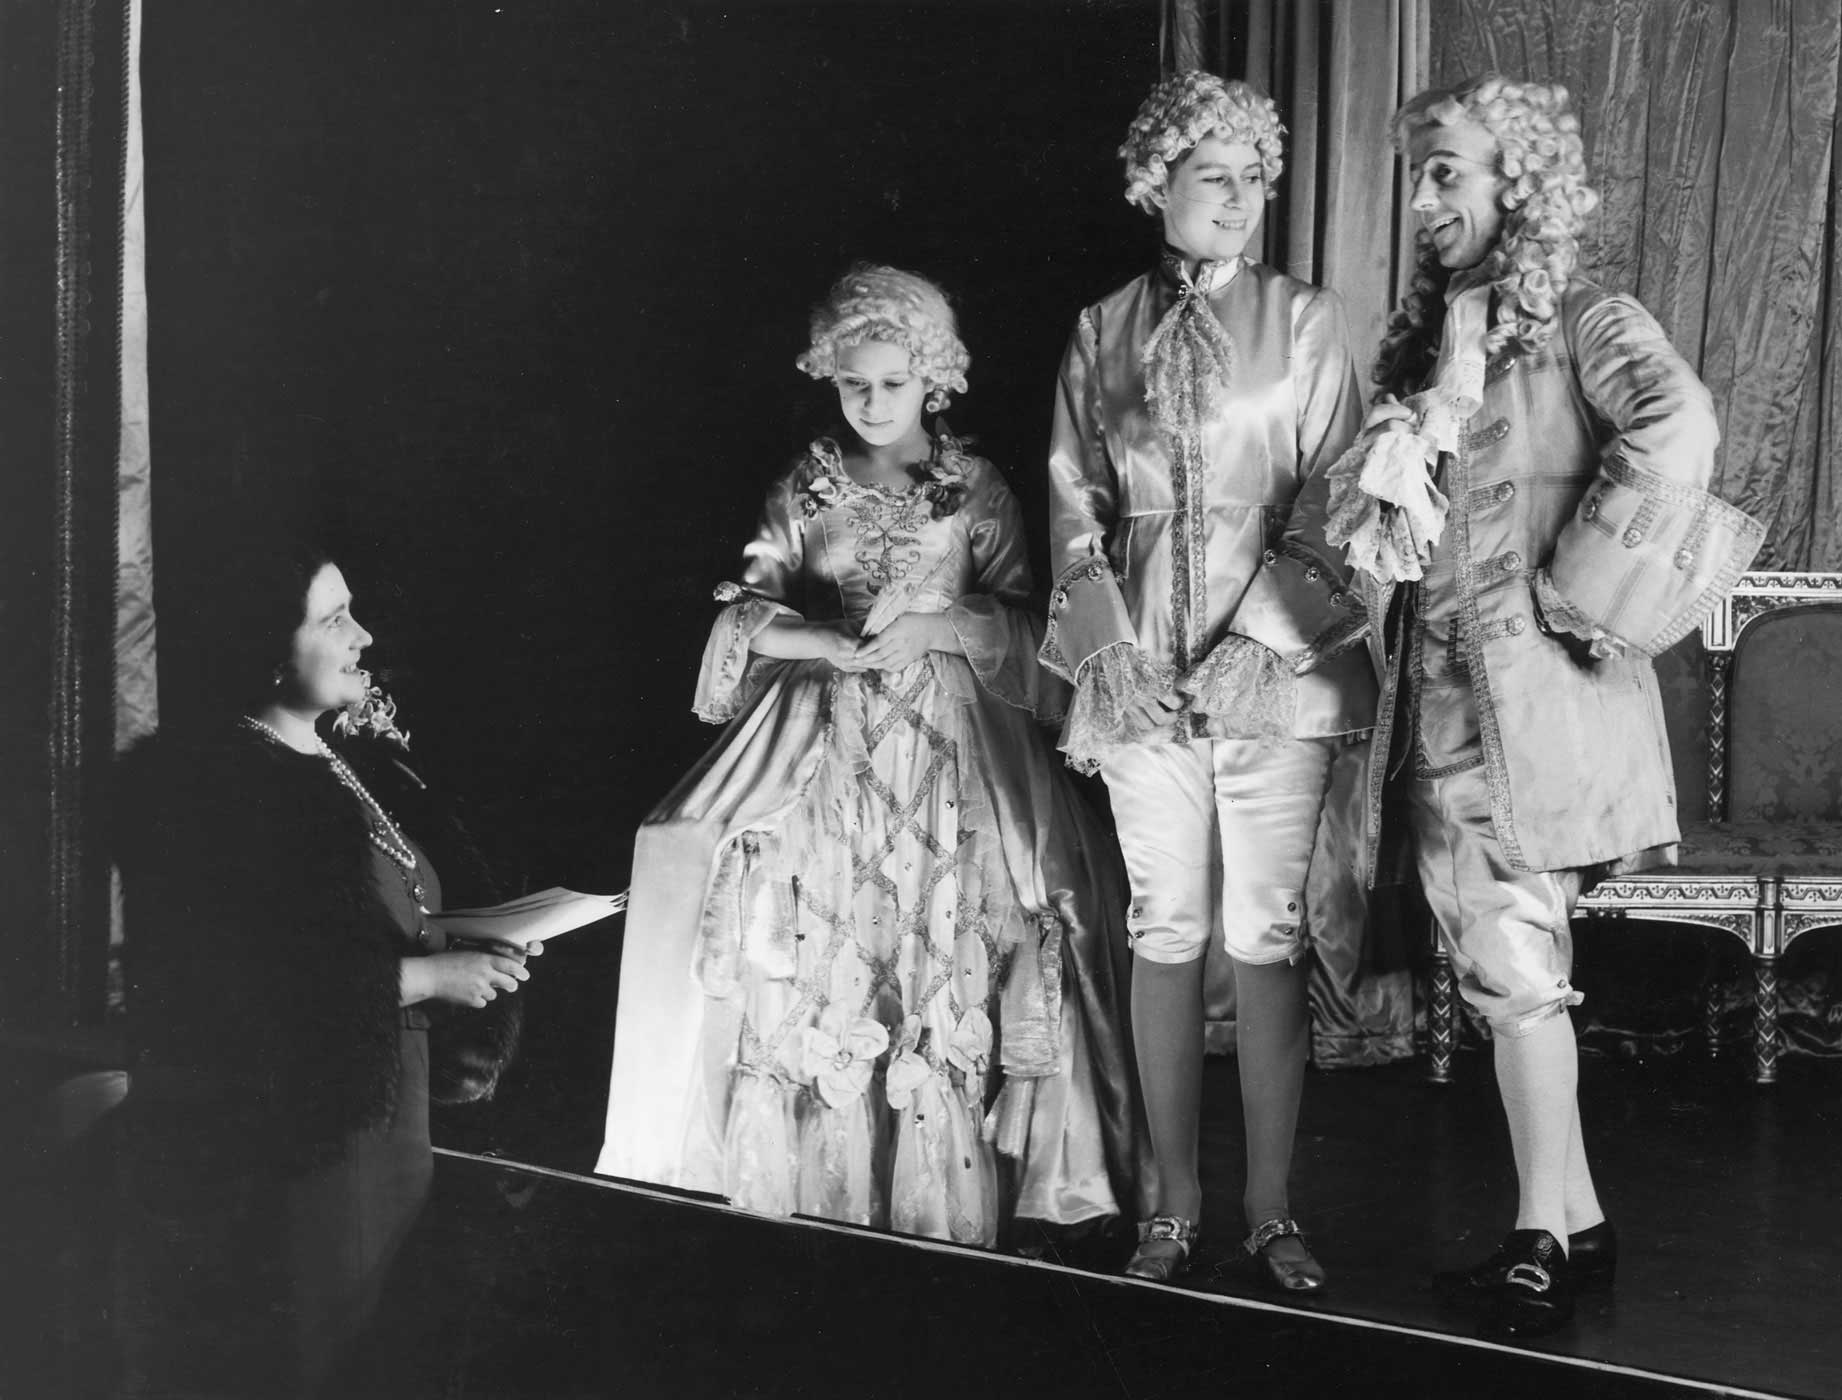 Queen Elizabeth, Princess Margaret and Princess Elizabeth stage a rehearsal of Cinderella on Dec. 21, 1941, the first royal pantomime at Windsor Castle. Both Elizabeth and Margaret were educated at home, with lessons concentrating on history, language, literature and music.